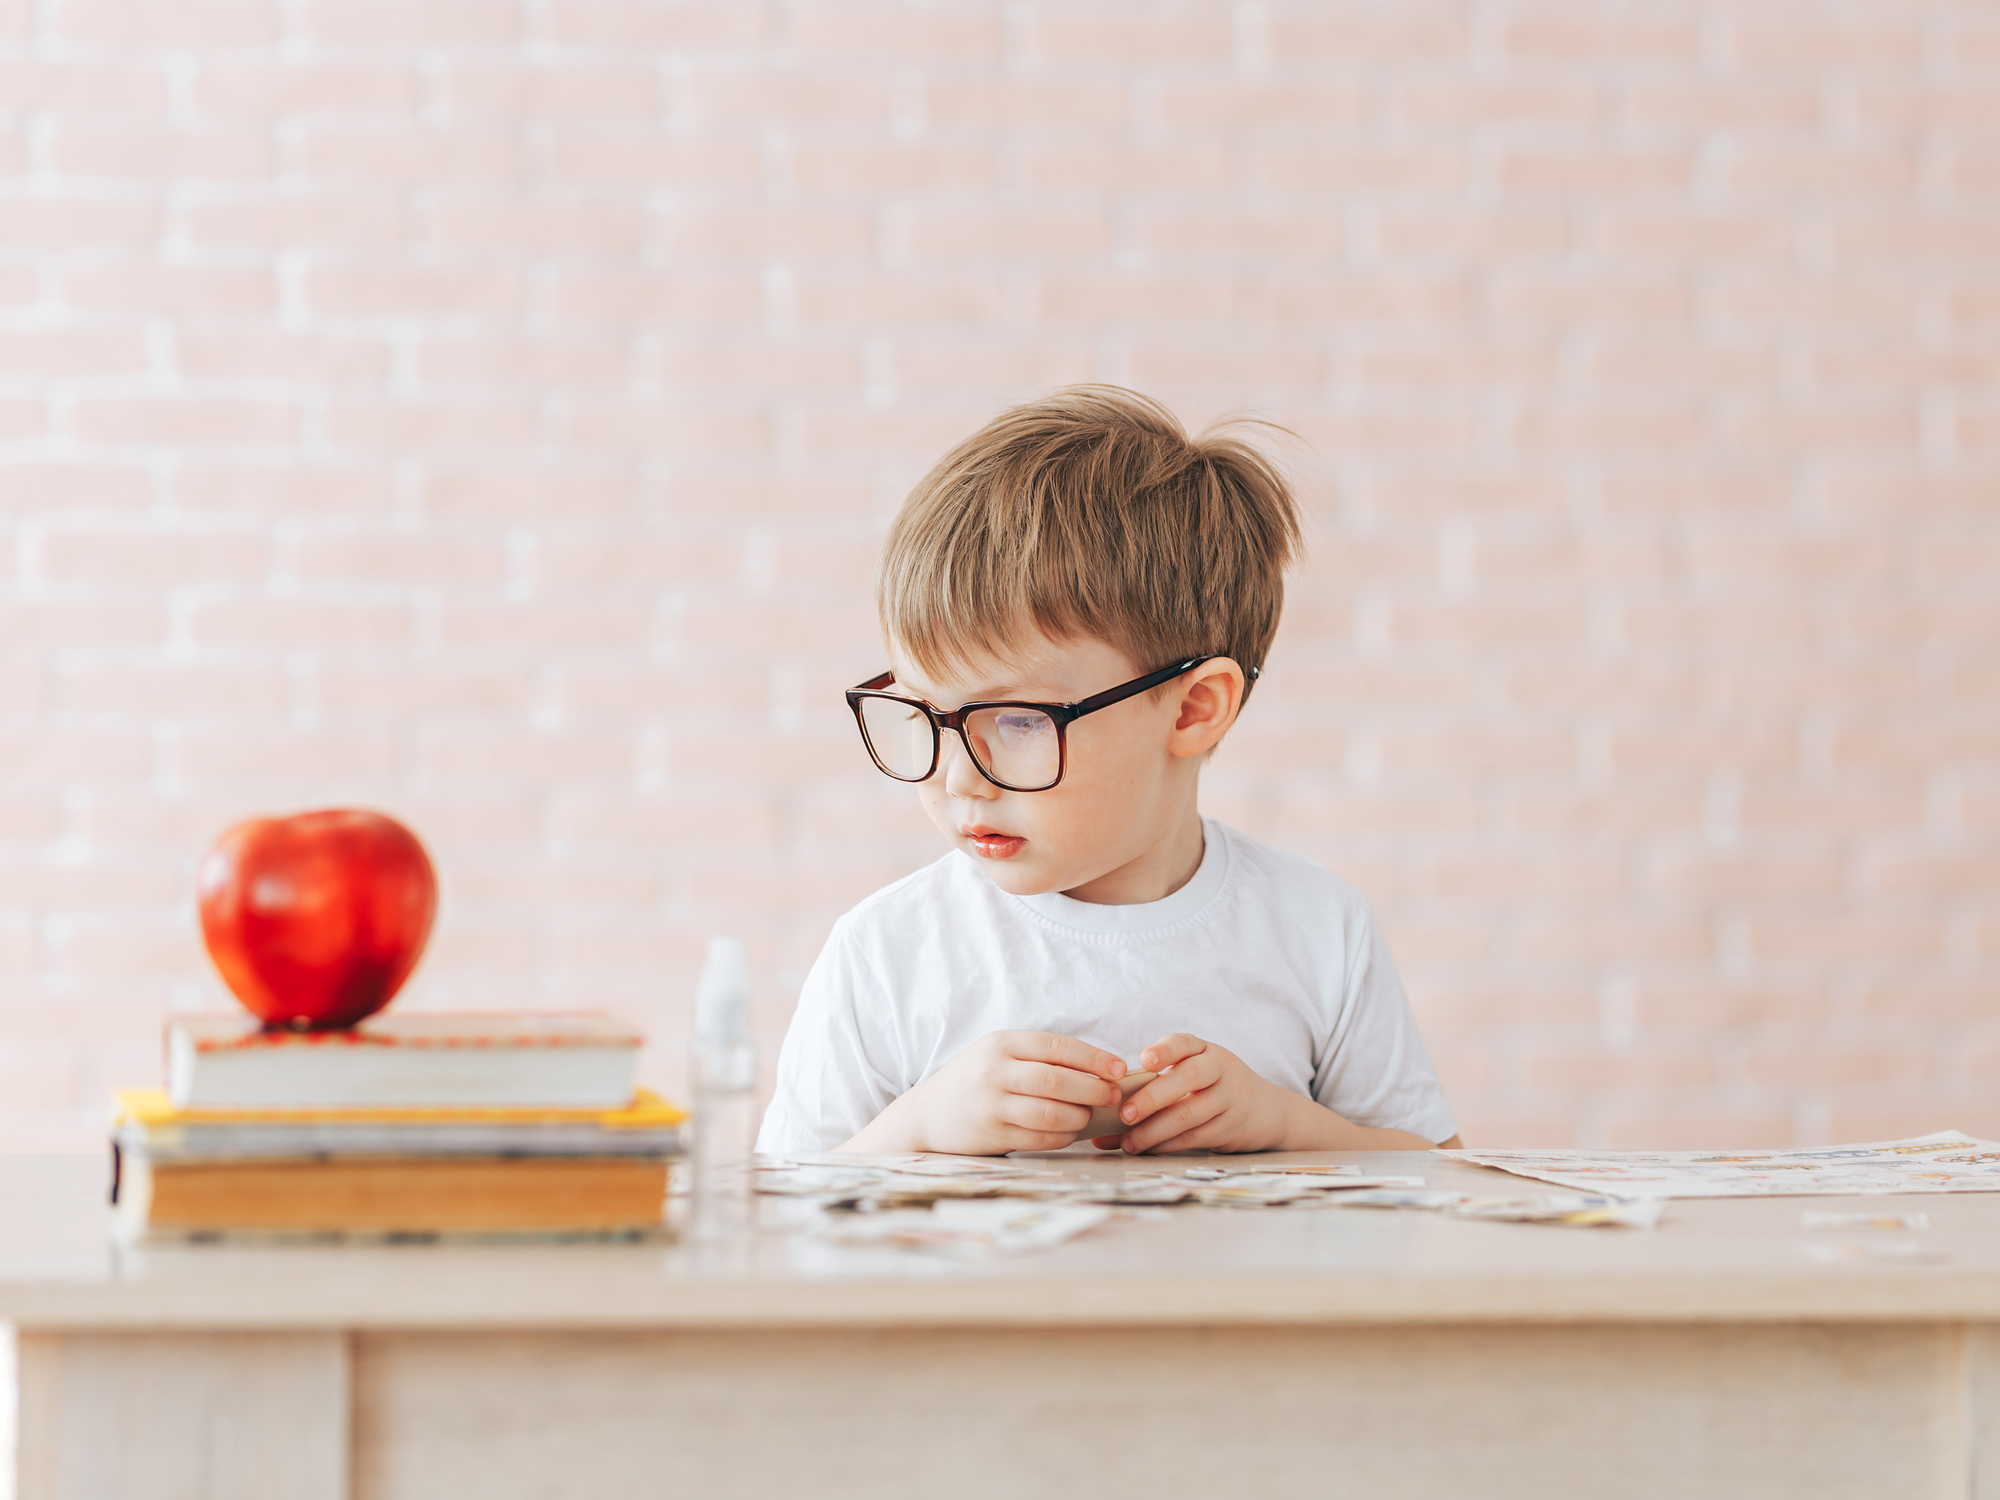 At What Age Should Myopia Control Start?